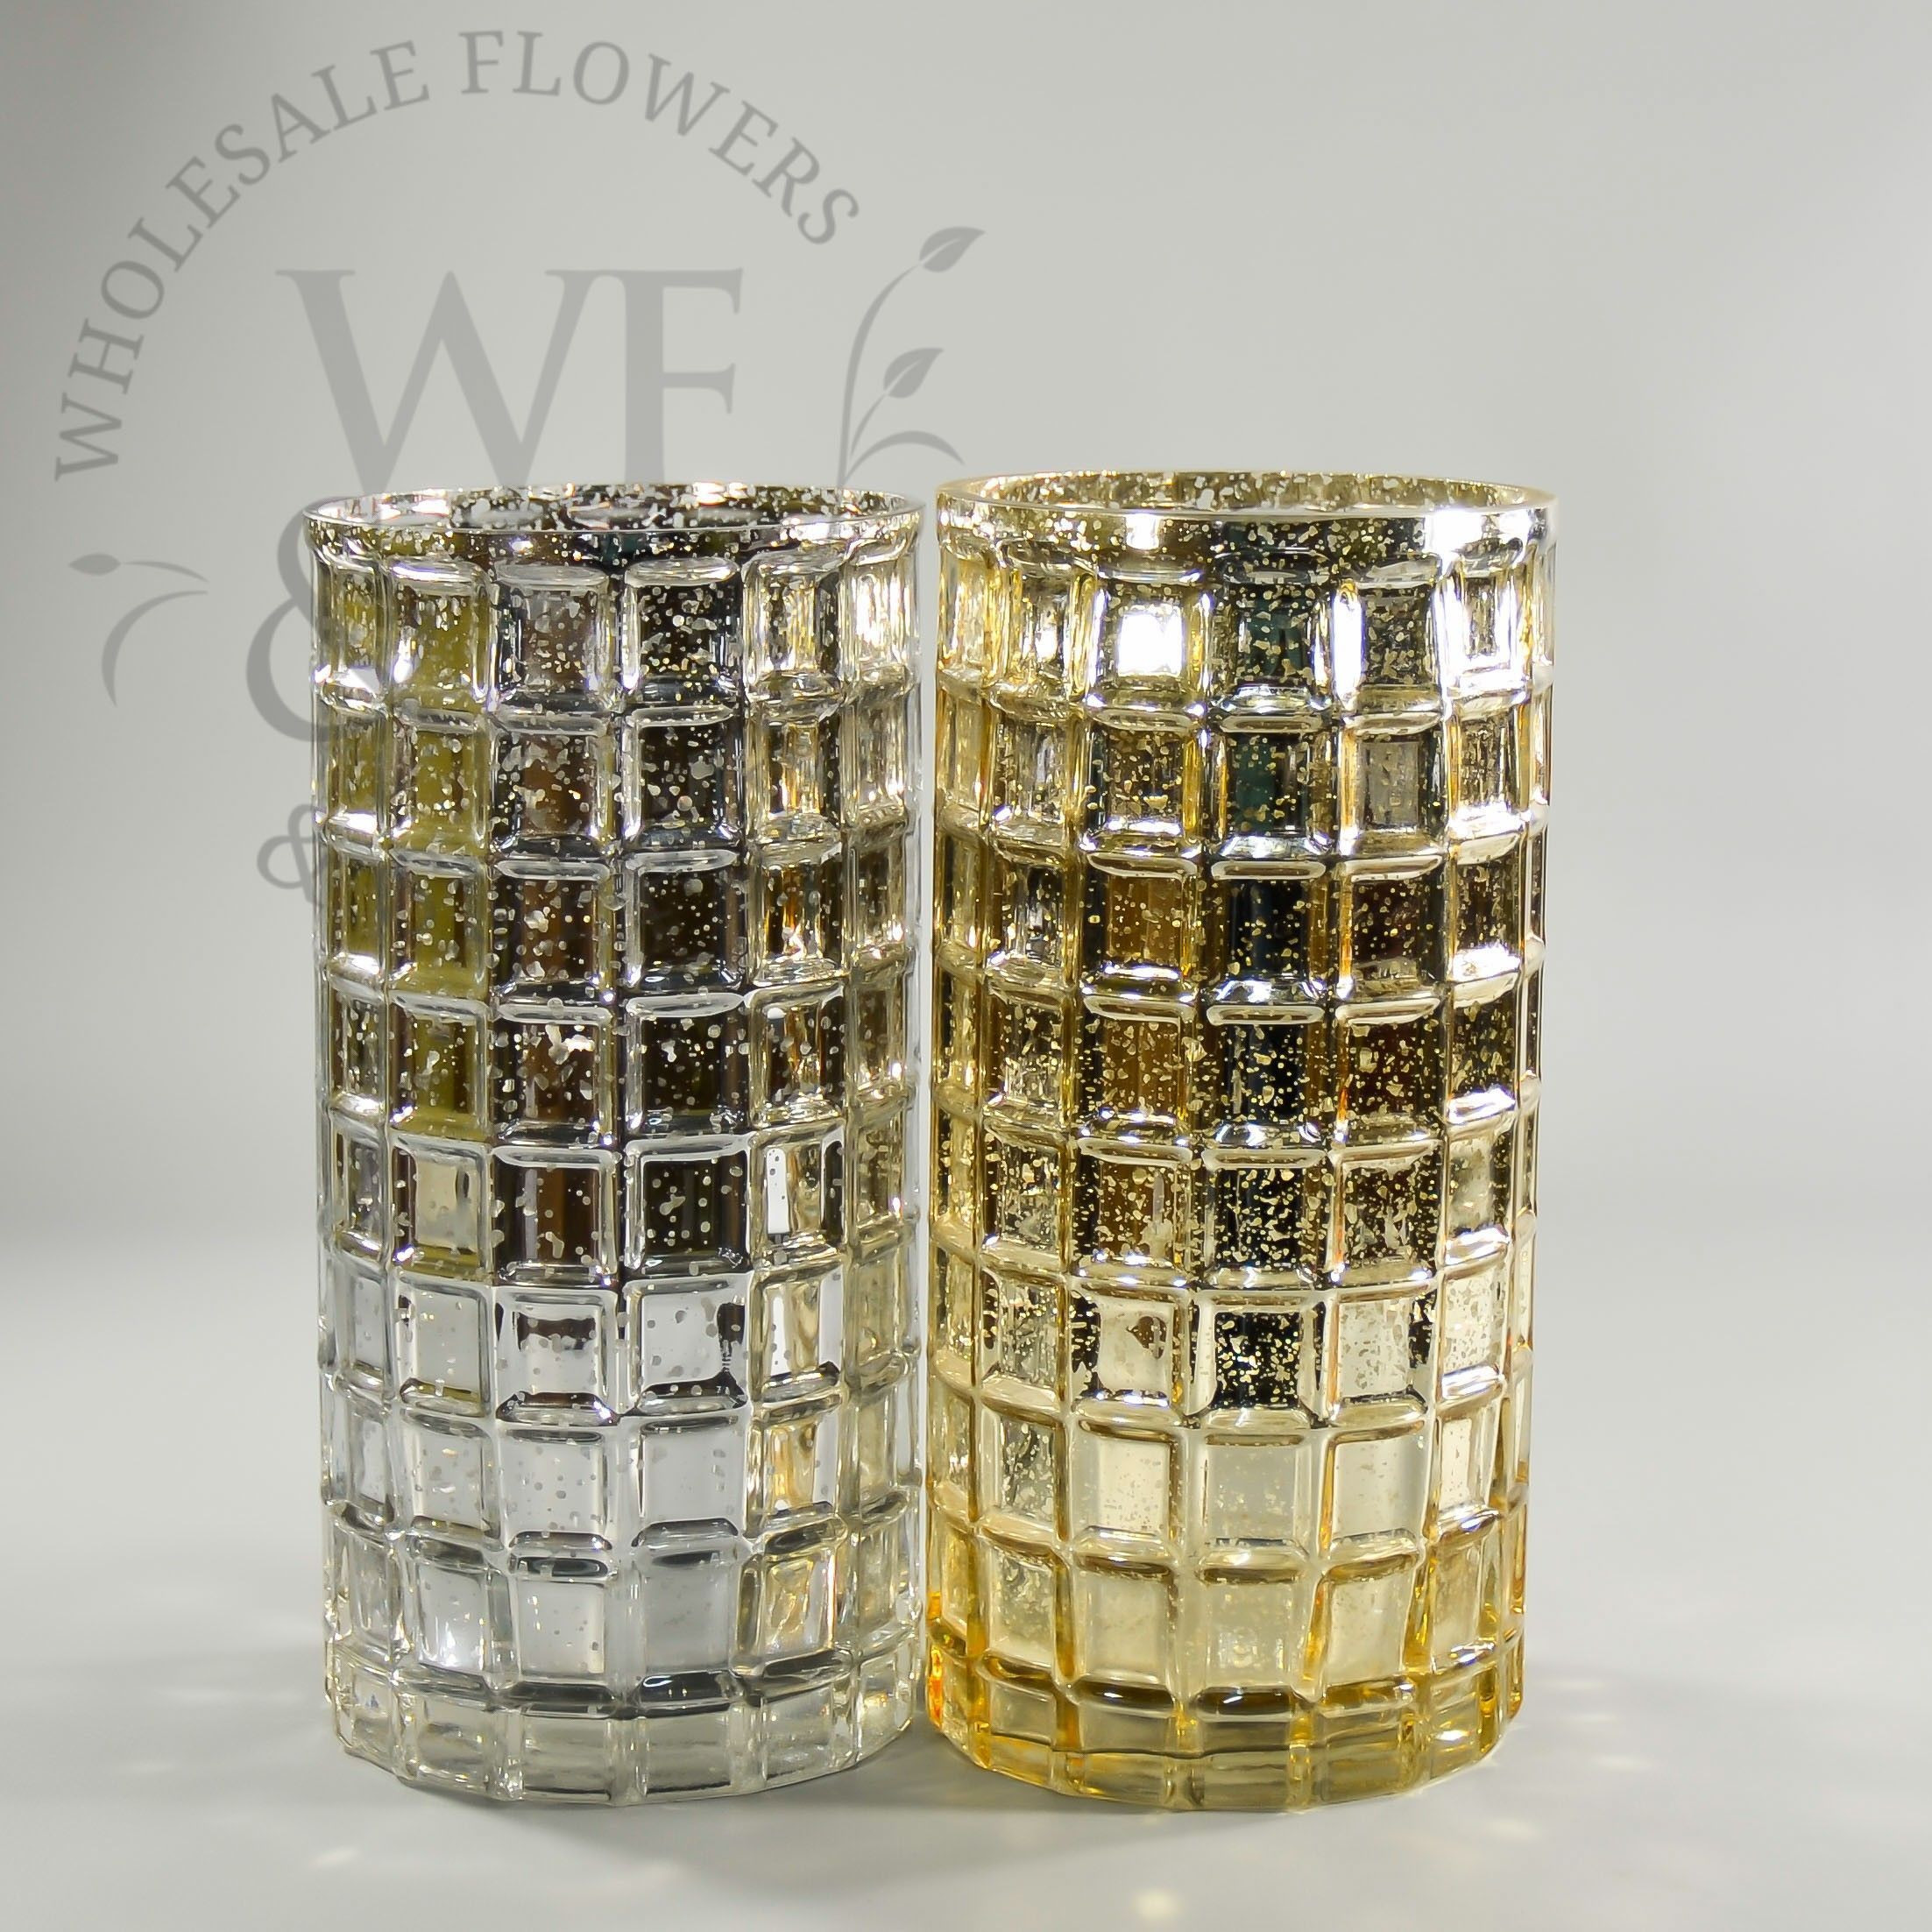 29 Unique Silver Vases wholesale 2021 free download silver vases wholesale of tall vases wholesale luxury silver and gold mercury glass mosaic within tall vases wholesale luxury silver and gold mercury glass mosaic cylinder vase 10x5in